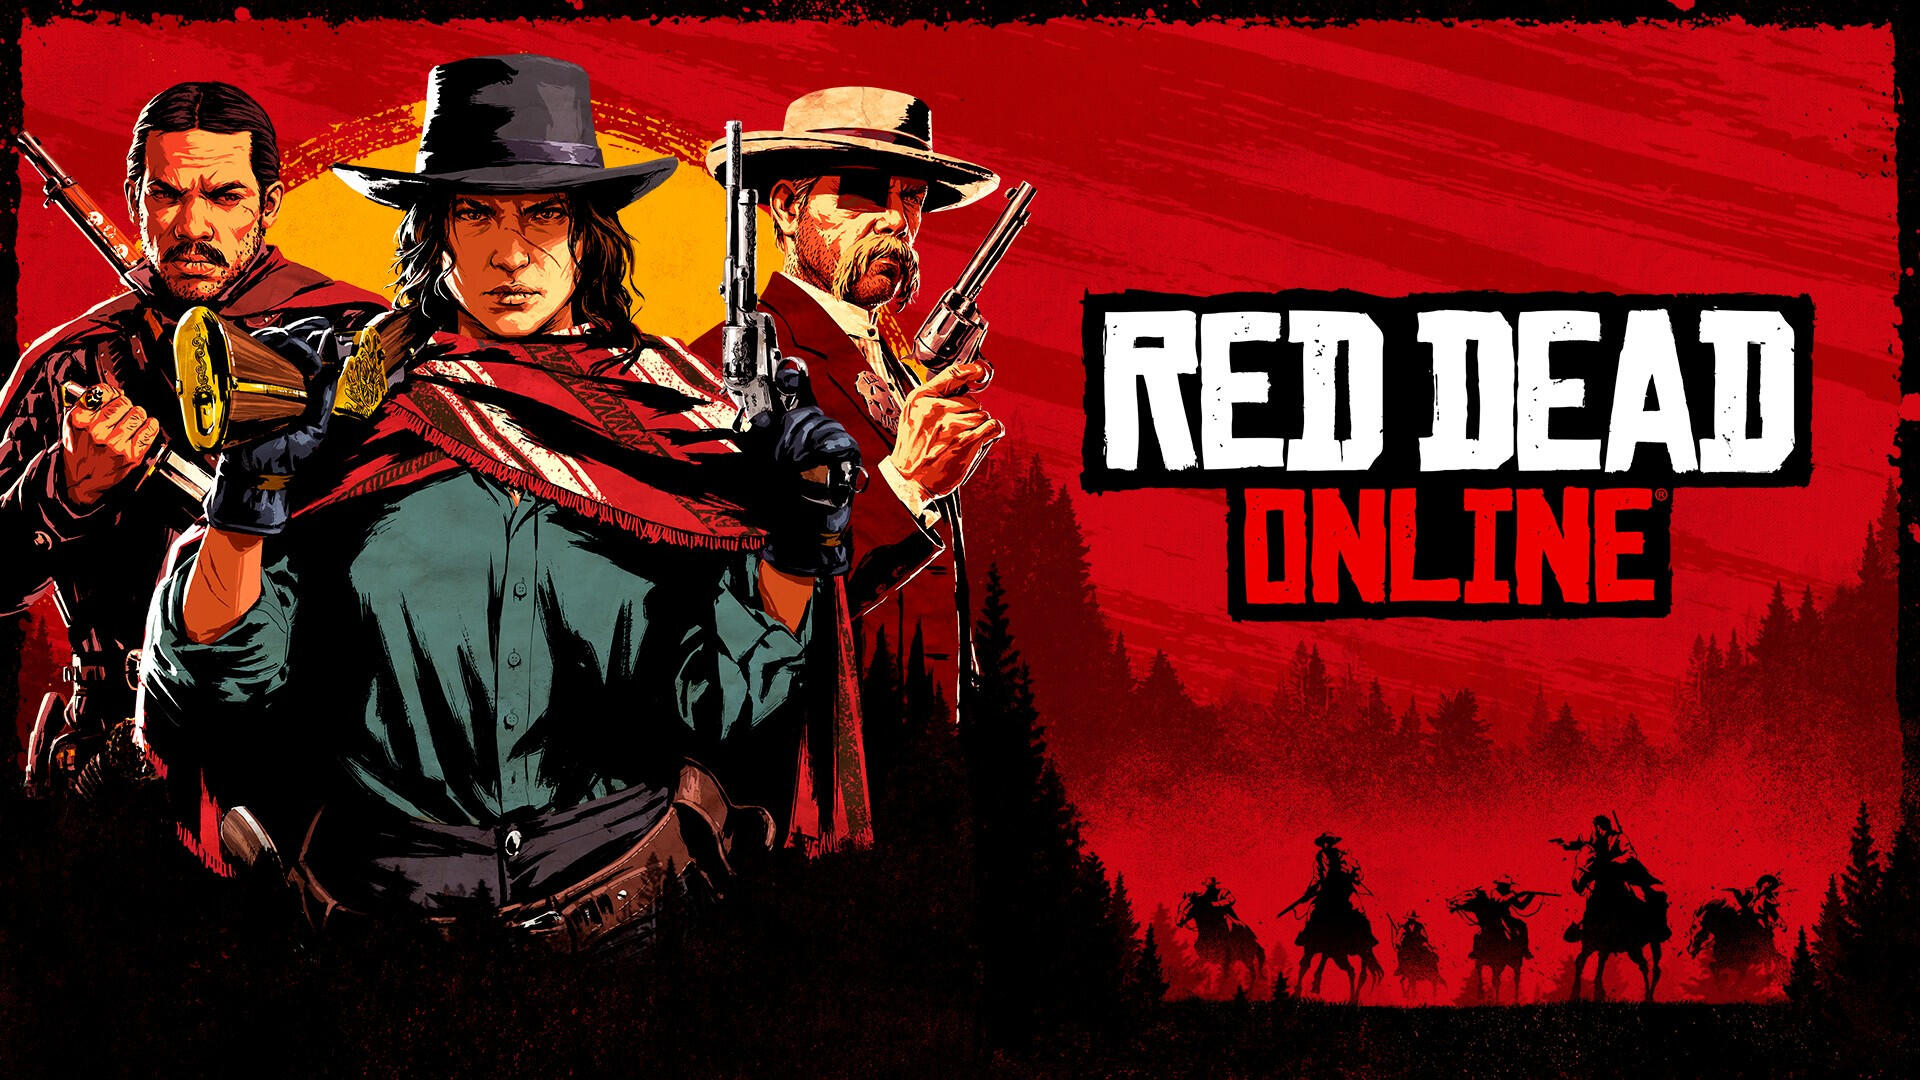 Red Dead Online, FIFA 21, Final Fantasy X coming to Xbox Game Pass in May - CNET